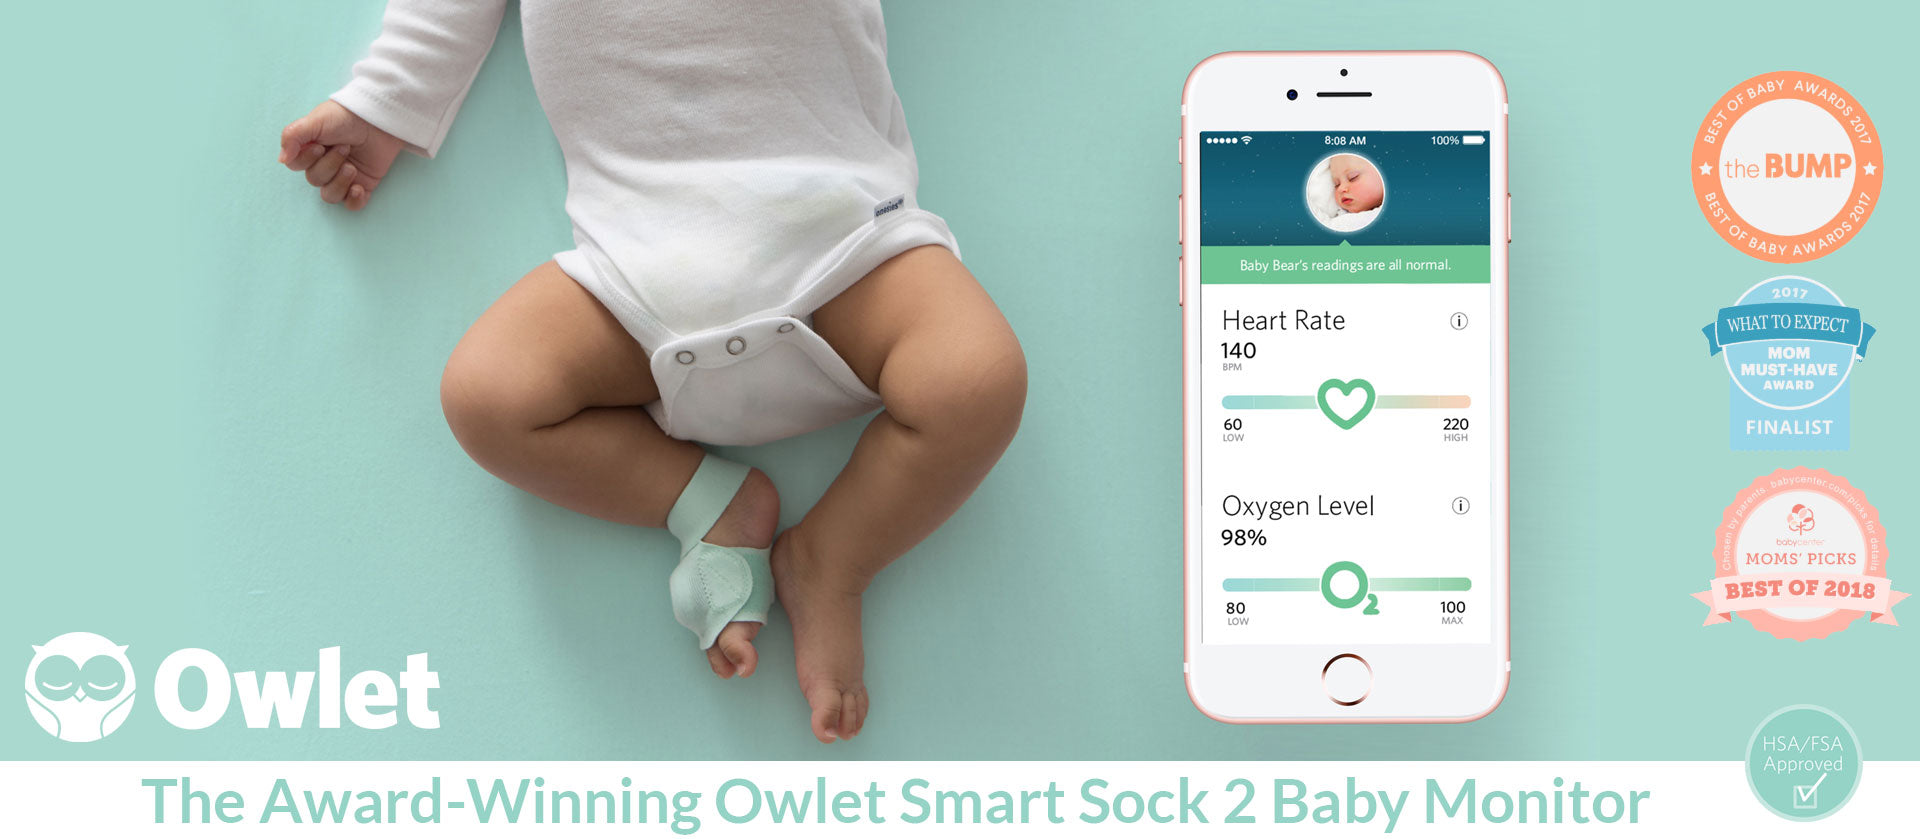 Buy the Owlet Smart Sock 2 Baby Monitor Now